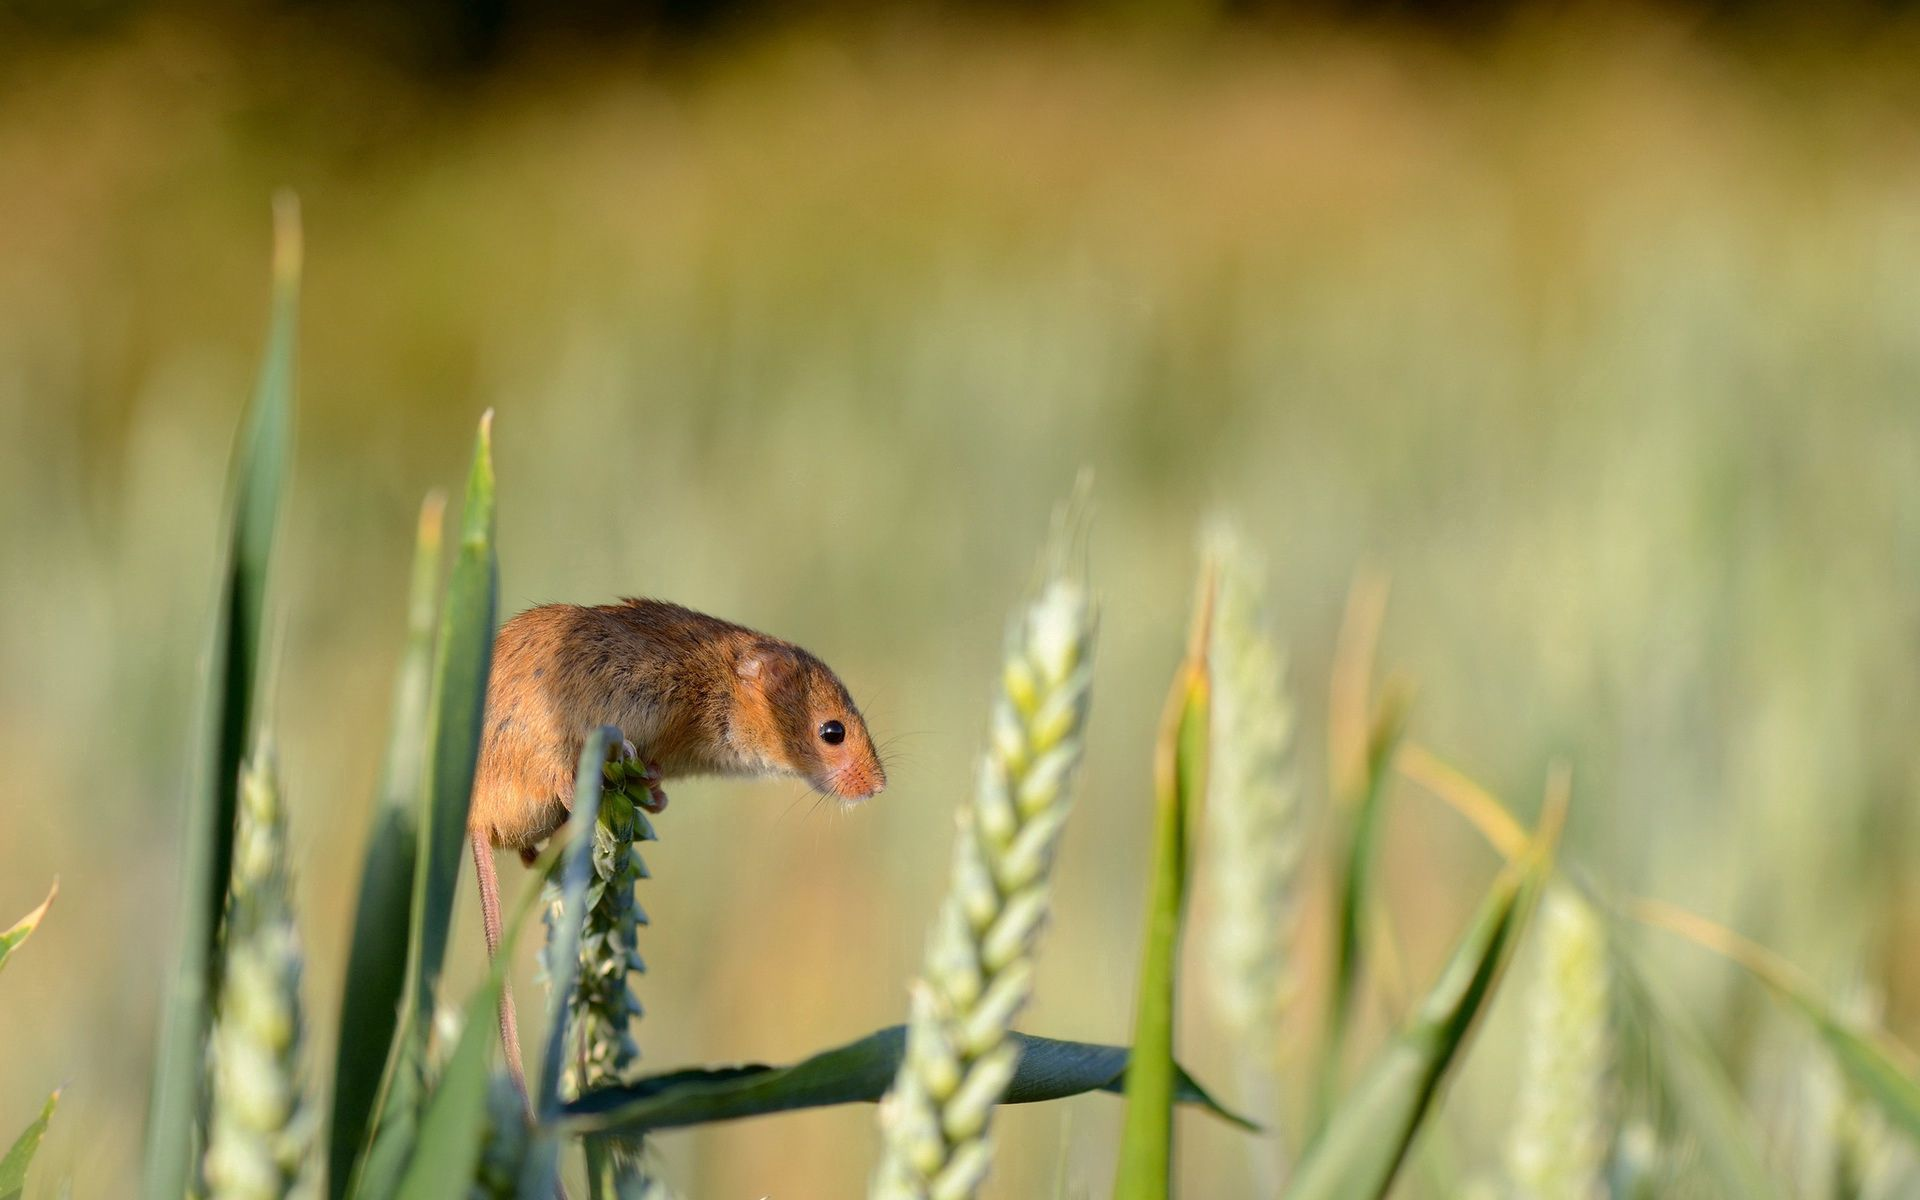 140667 download wallpaper Animals, Harvest Mouse, Field Mouse, Ear, Grass, Rodent screensavers and pictures for free